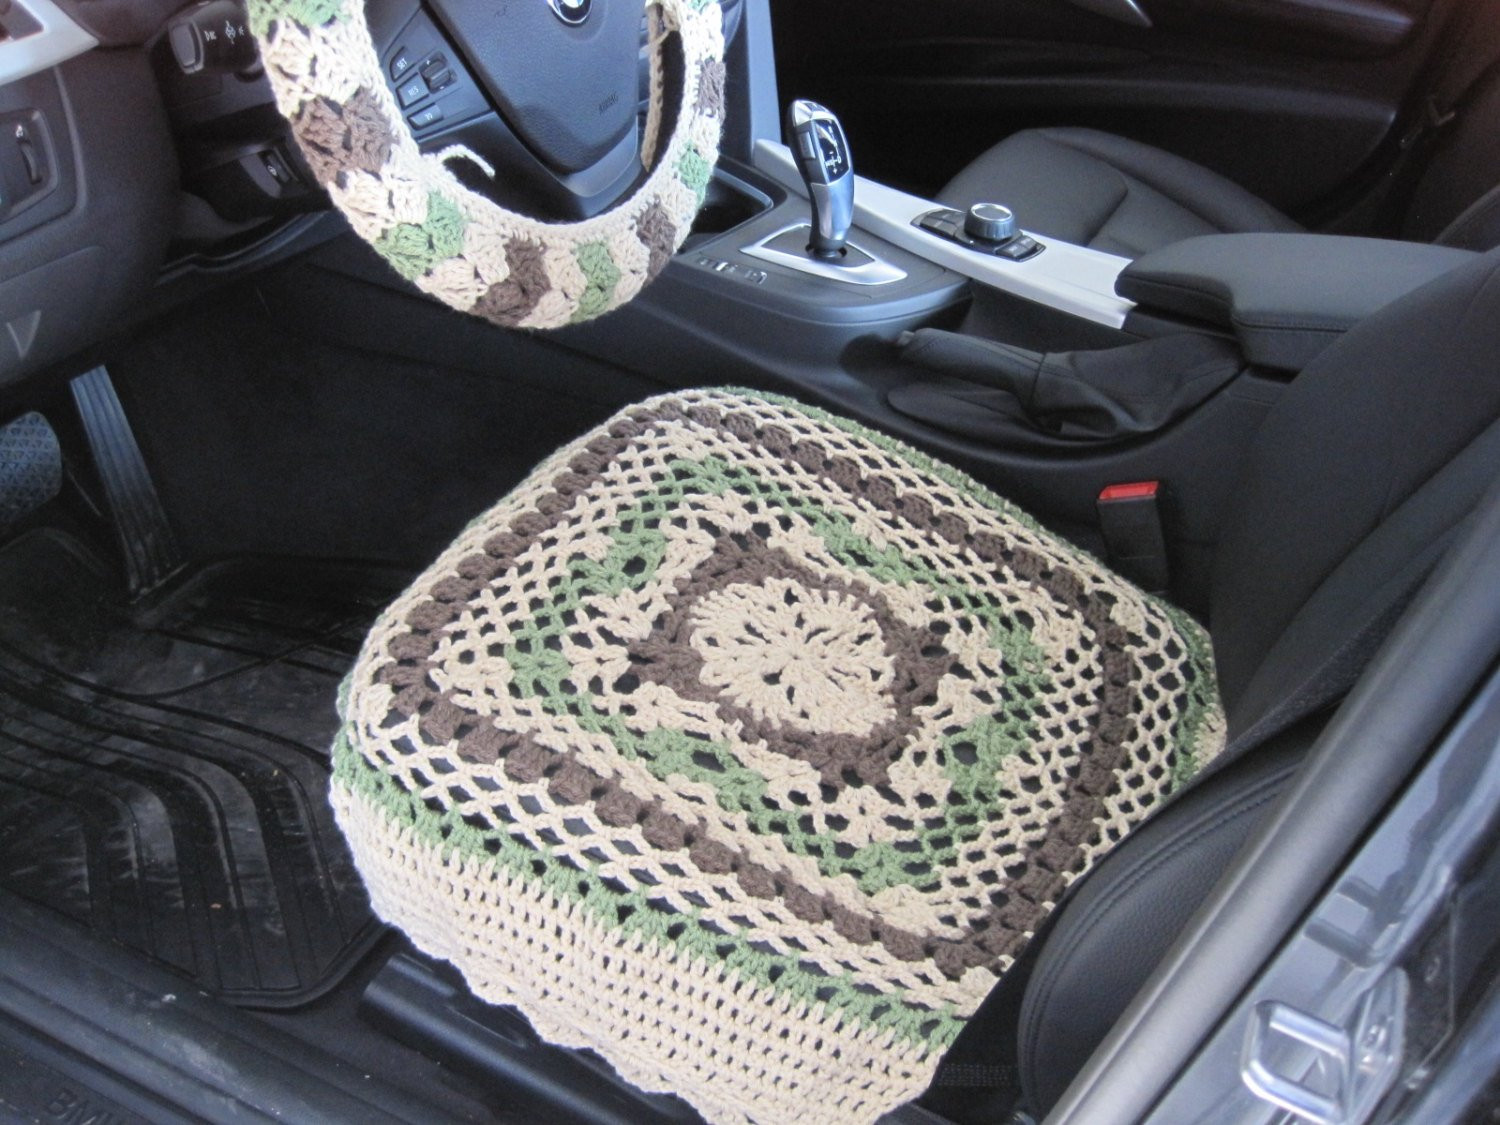 Awesome Crochet Car Front Seat Cover Oatmeal Tea Leaf Taupe Heather Crochet Seat Cover Of Beautiful Crochet Car Front Seat Cover Aran Grey Heather Ccfsc1a Crochet Seat Cover